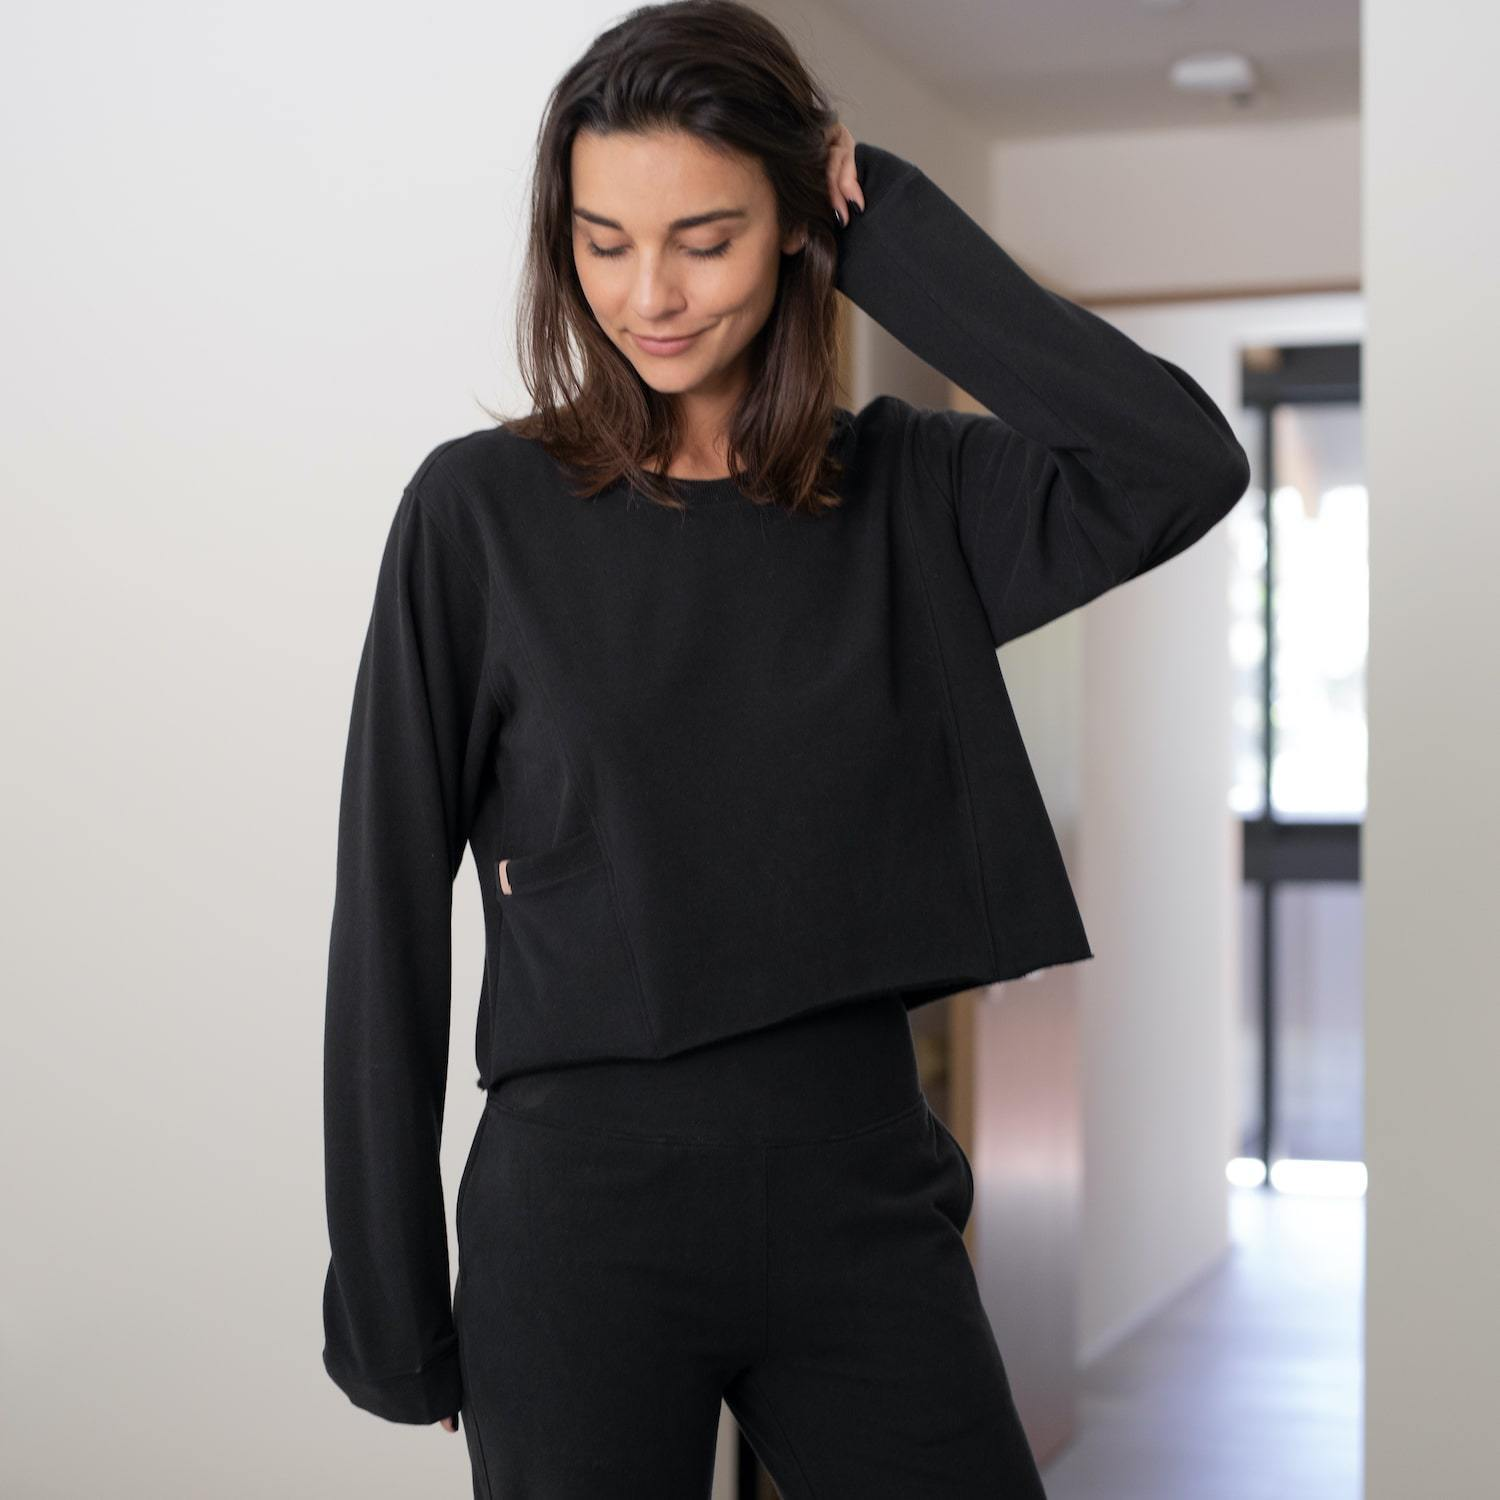 Lunya Sleepwear Cozy Pima Alpaca Fleece Crop Sweatshirt - #Black